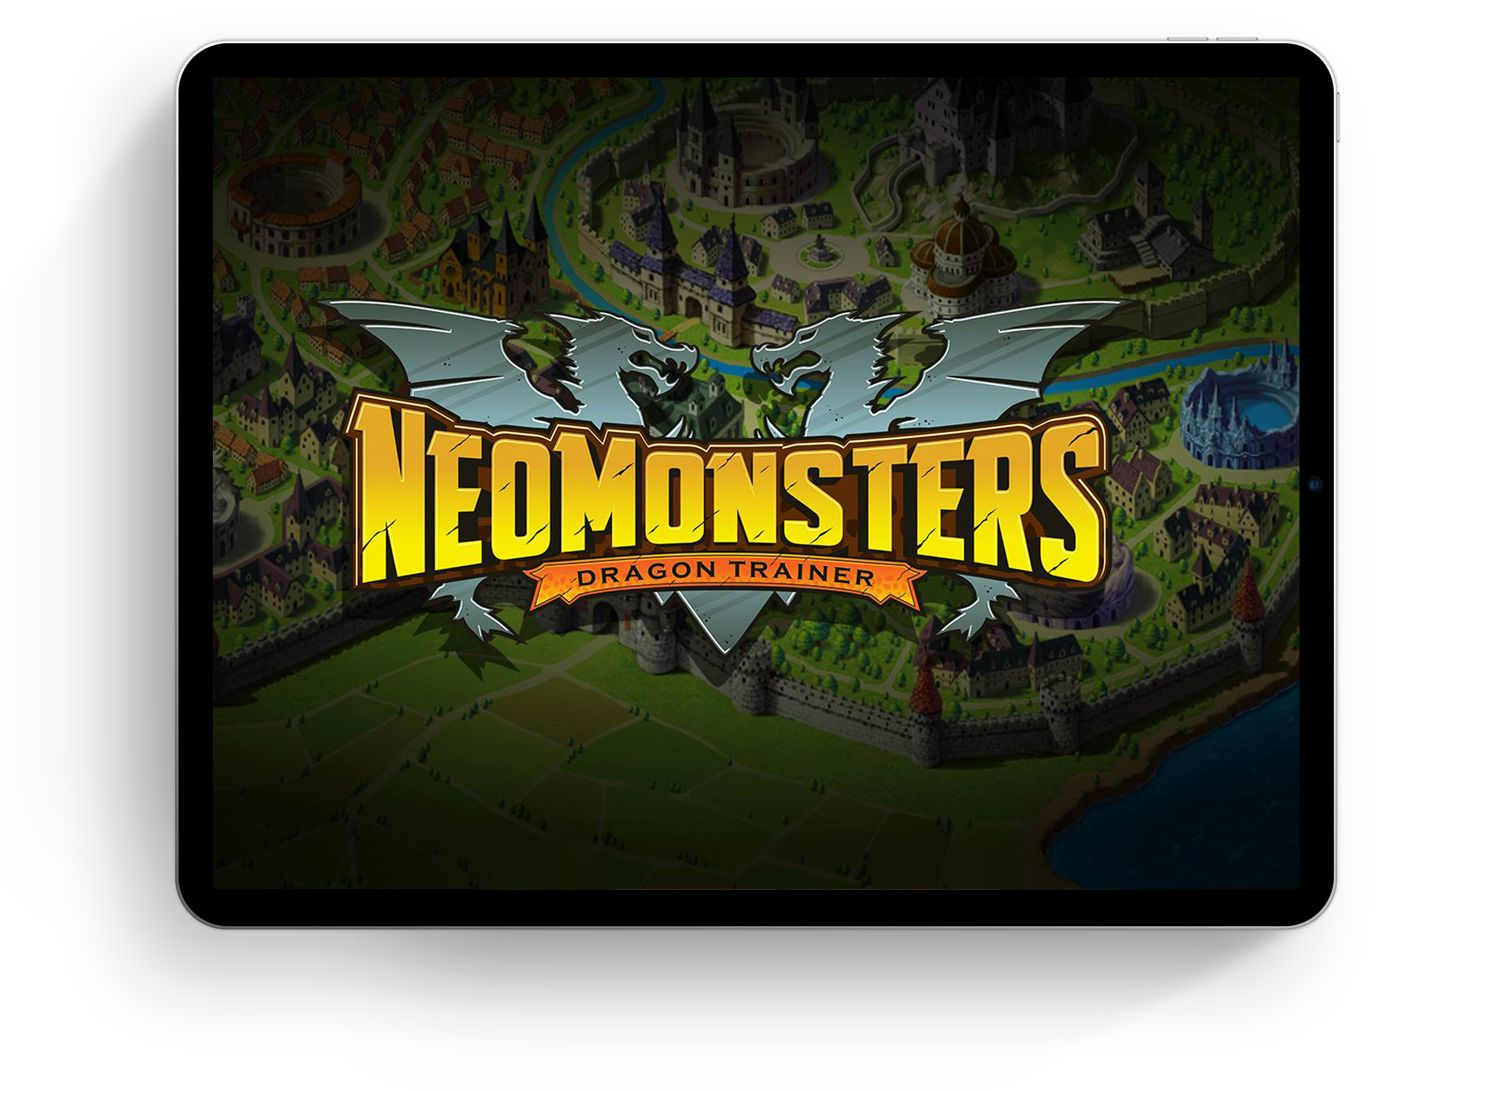 neo monsters game